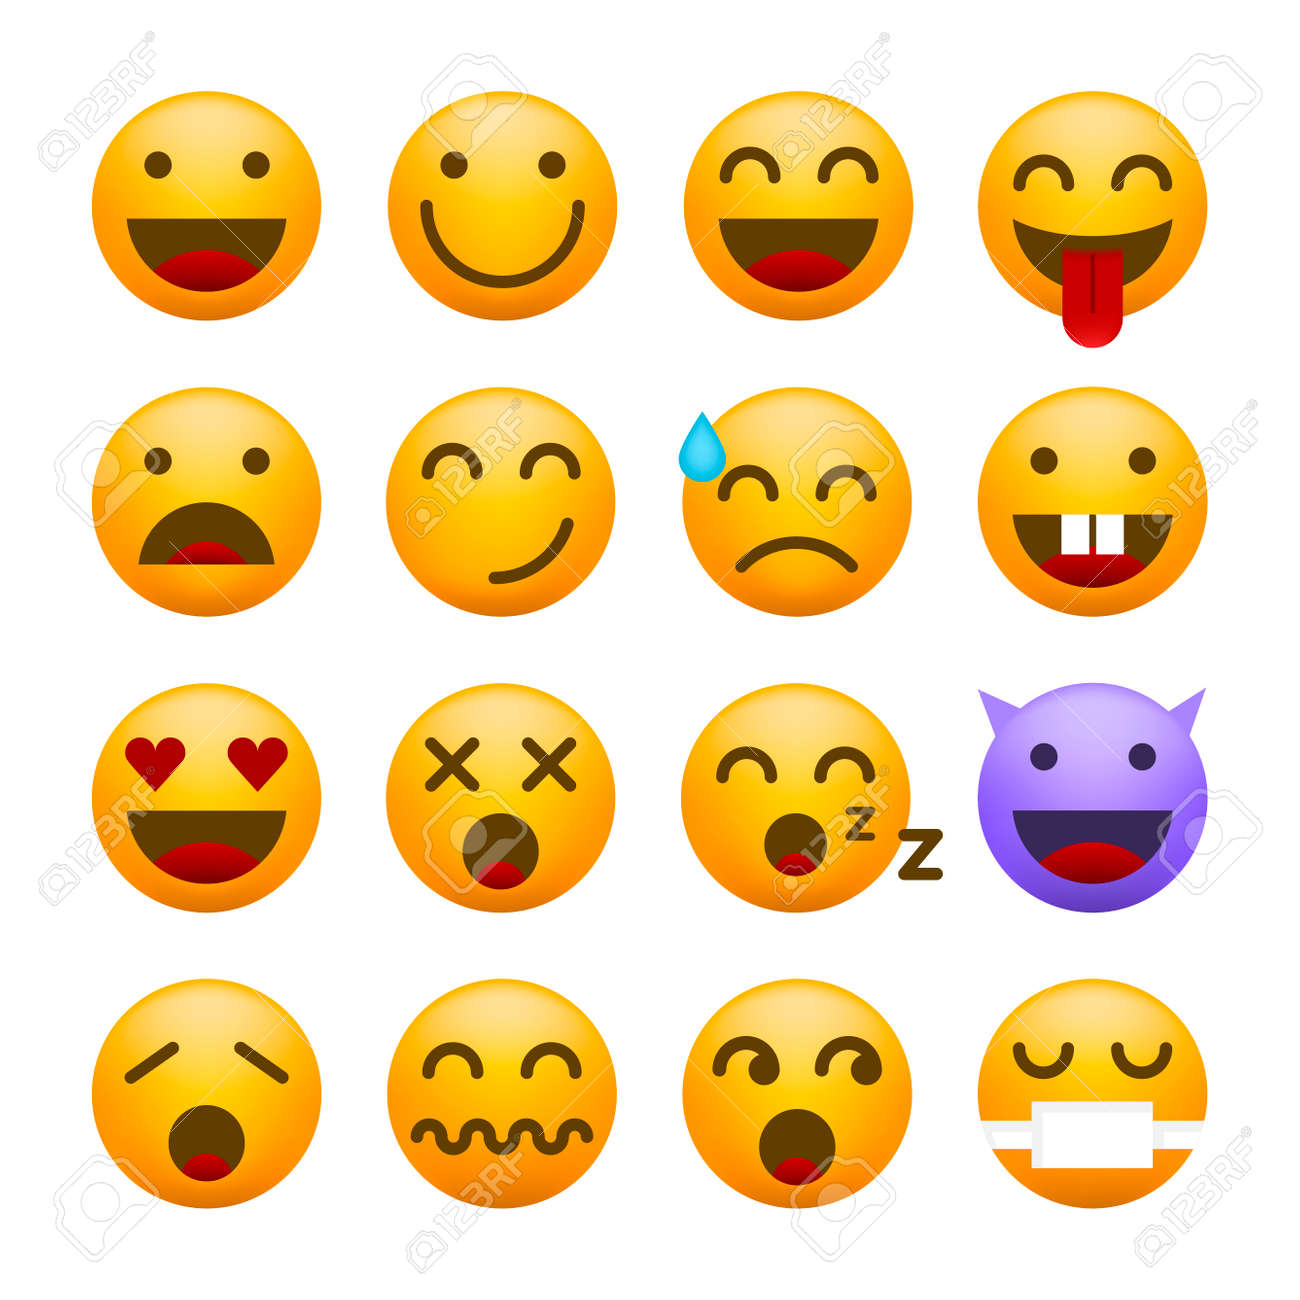 Cute High Quality Emoticon on White Background for your Design . Isolated Vector Illustration - 166853777